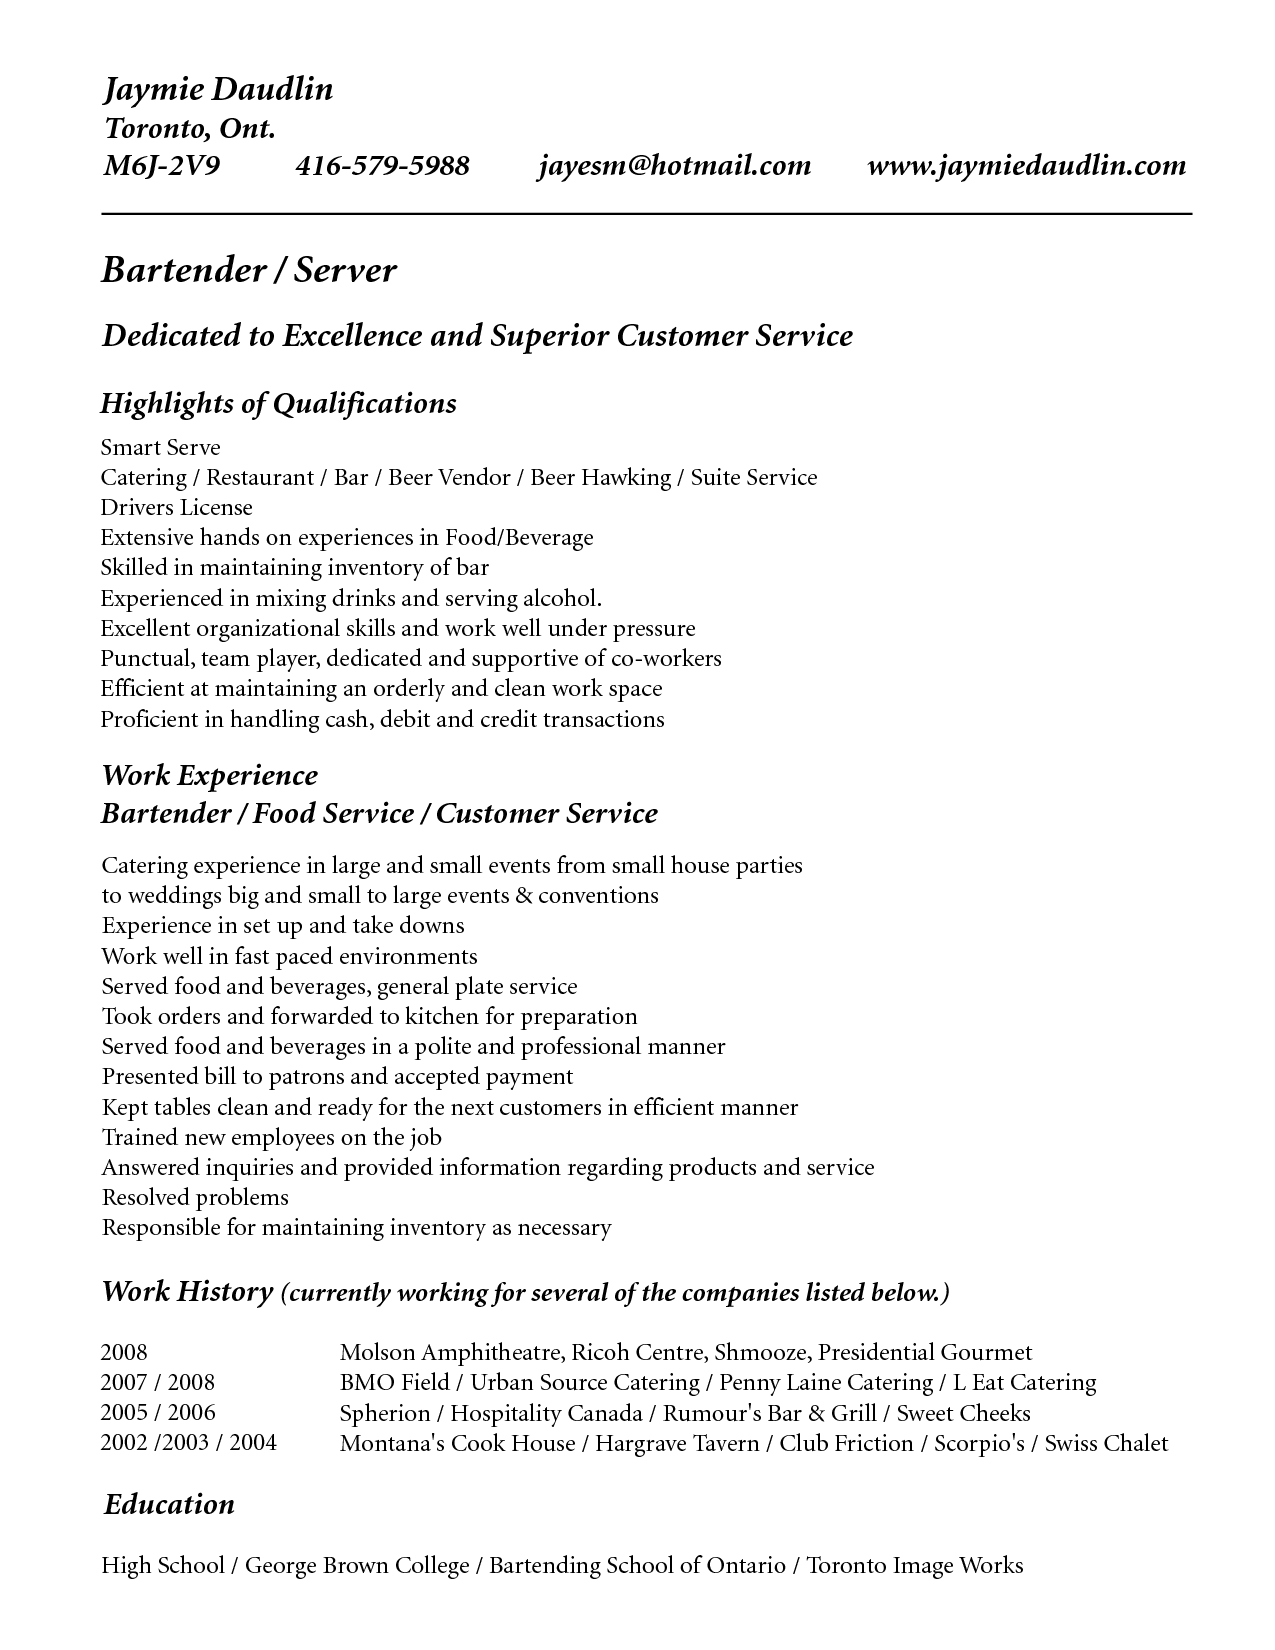 Superior We Already Knew That We Must Put Our Educational Information To Any Resume,  Including The Bartenders Resume. When You Make Your Bartender Resume, ... Ideas Bartender Responsibilities For Resume